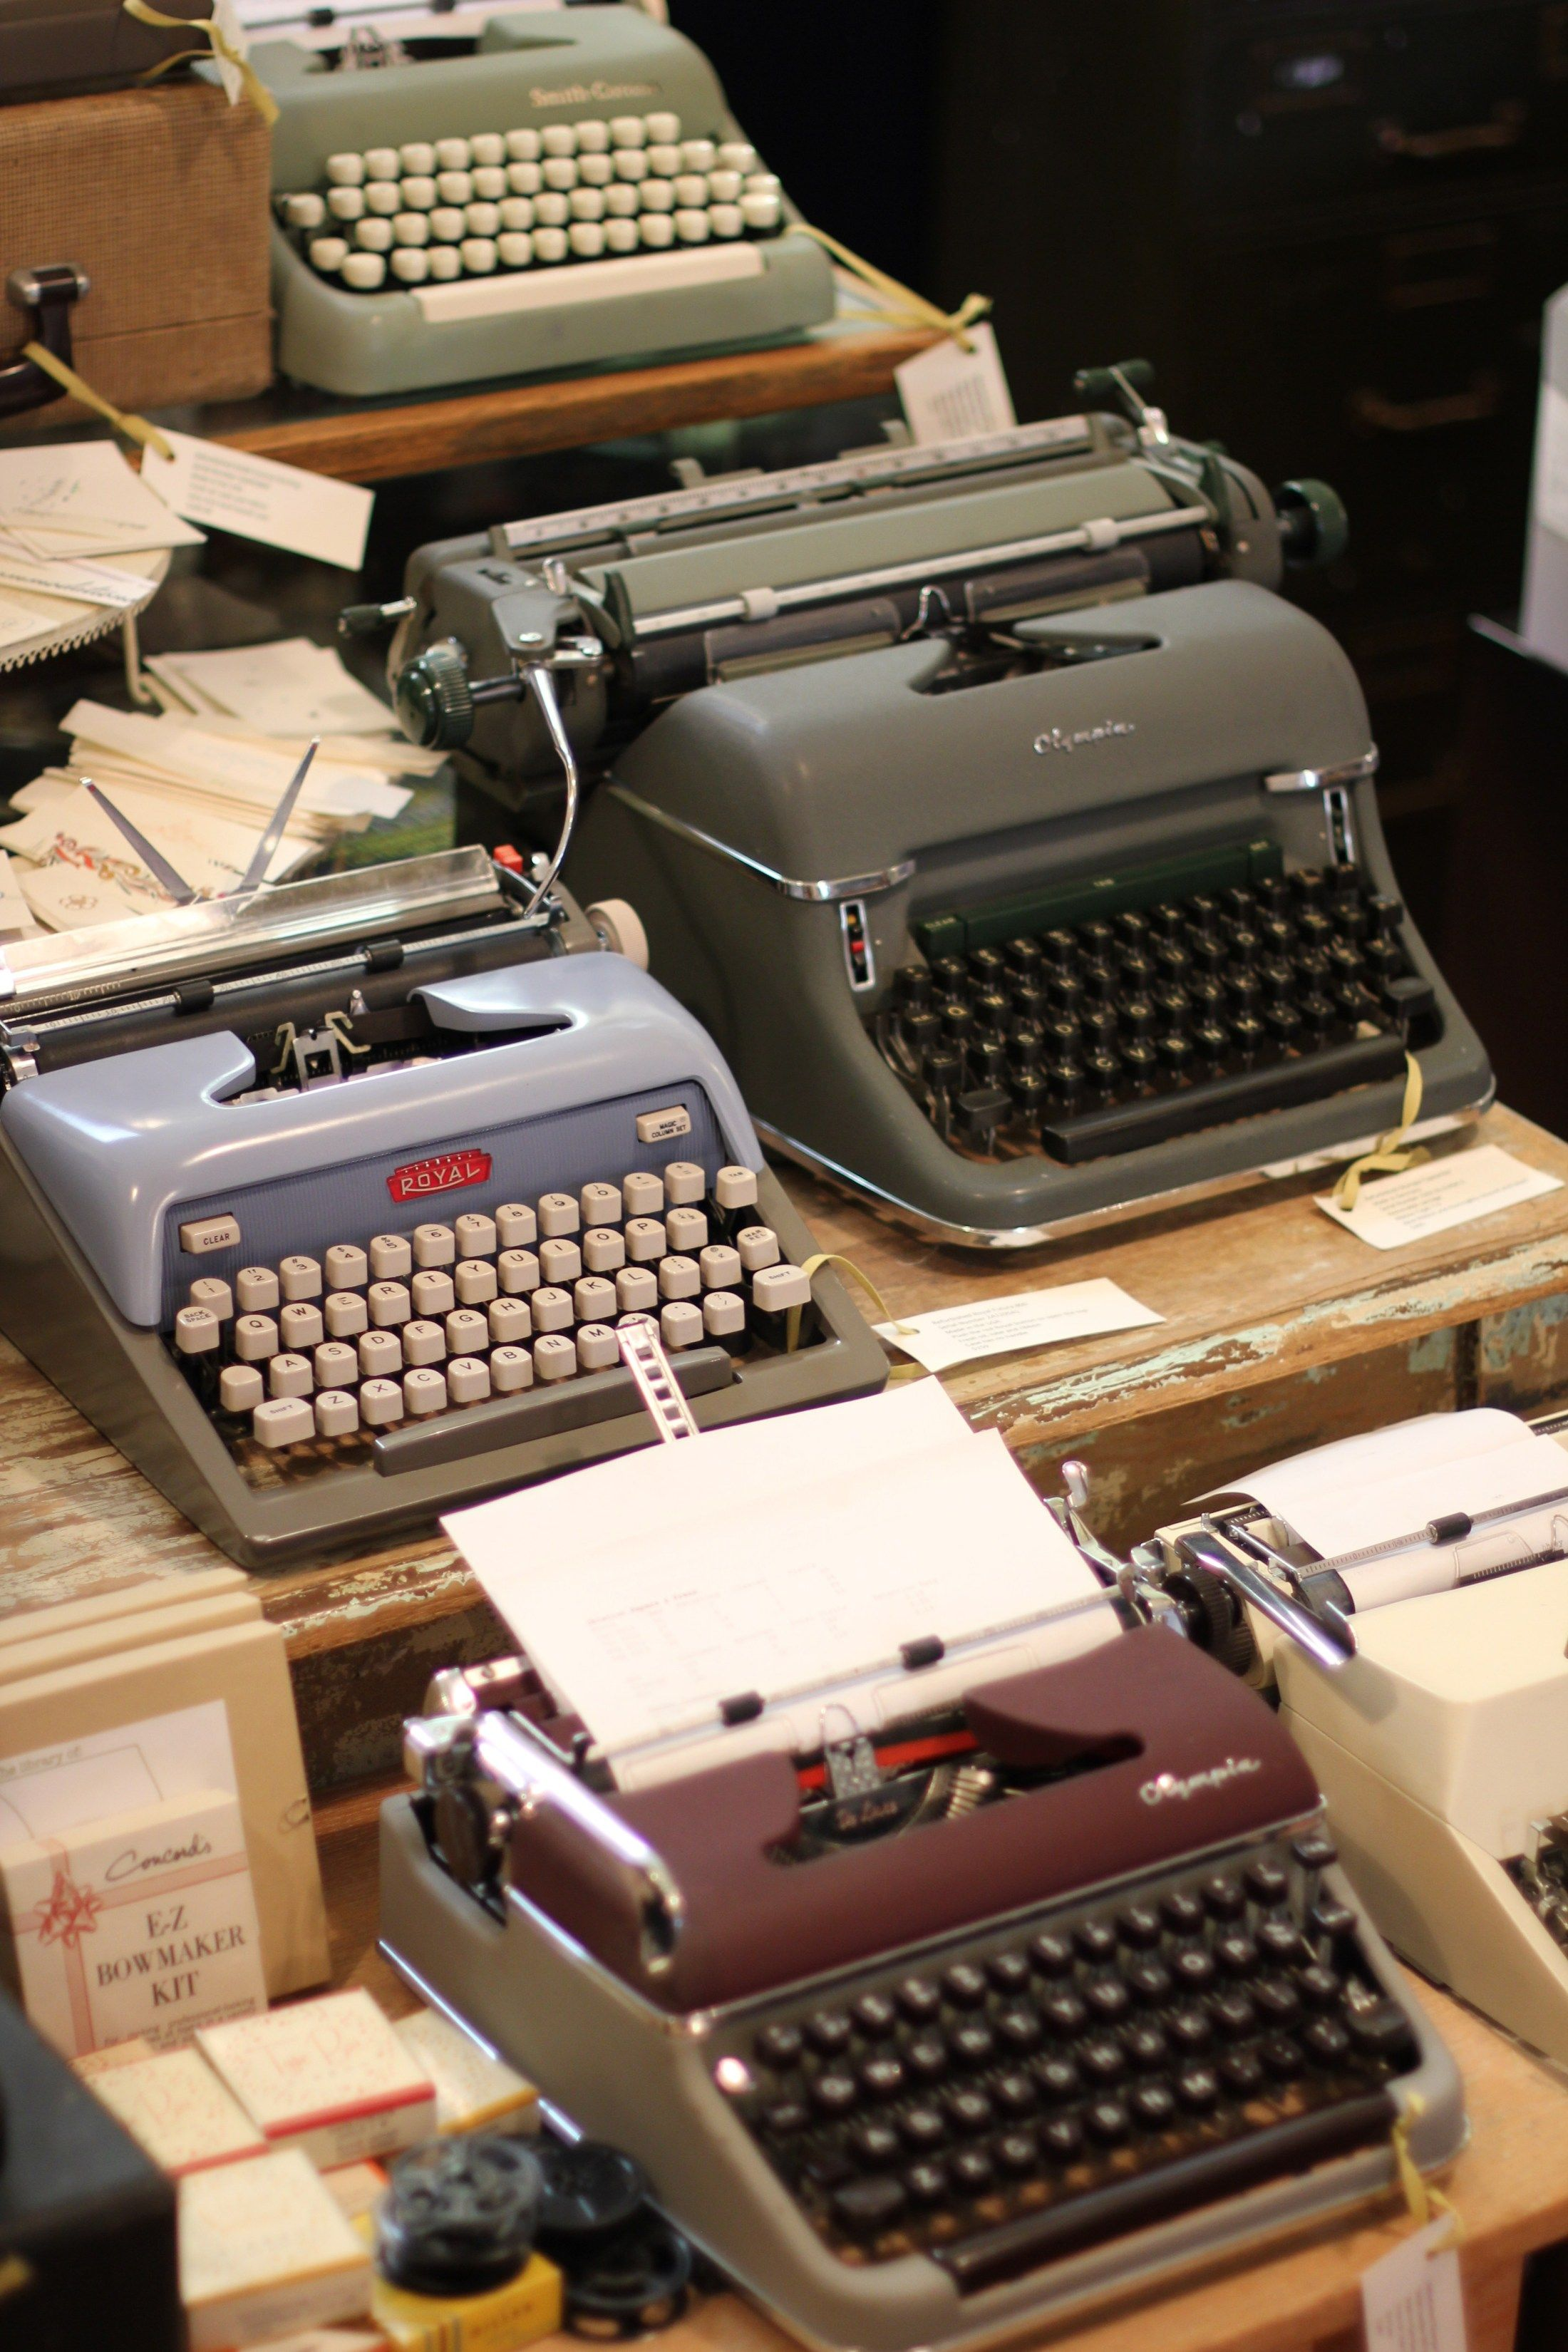 What I'm Liking This Week: Oblation's Typewriter Collection